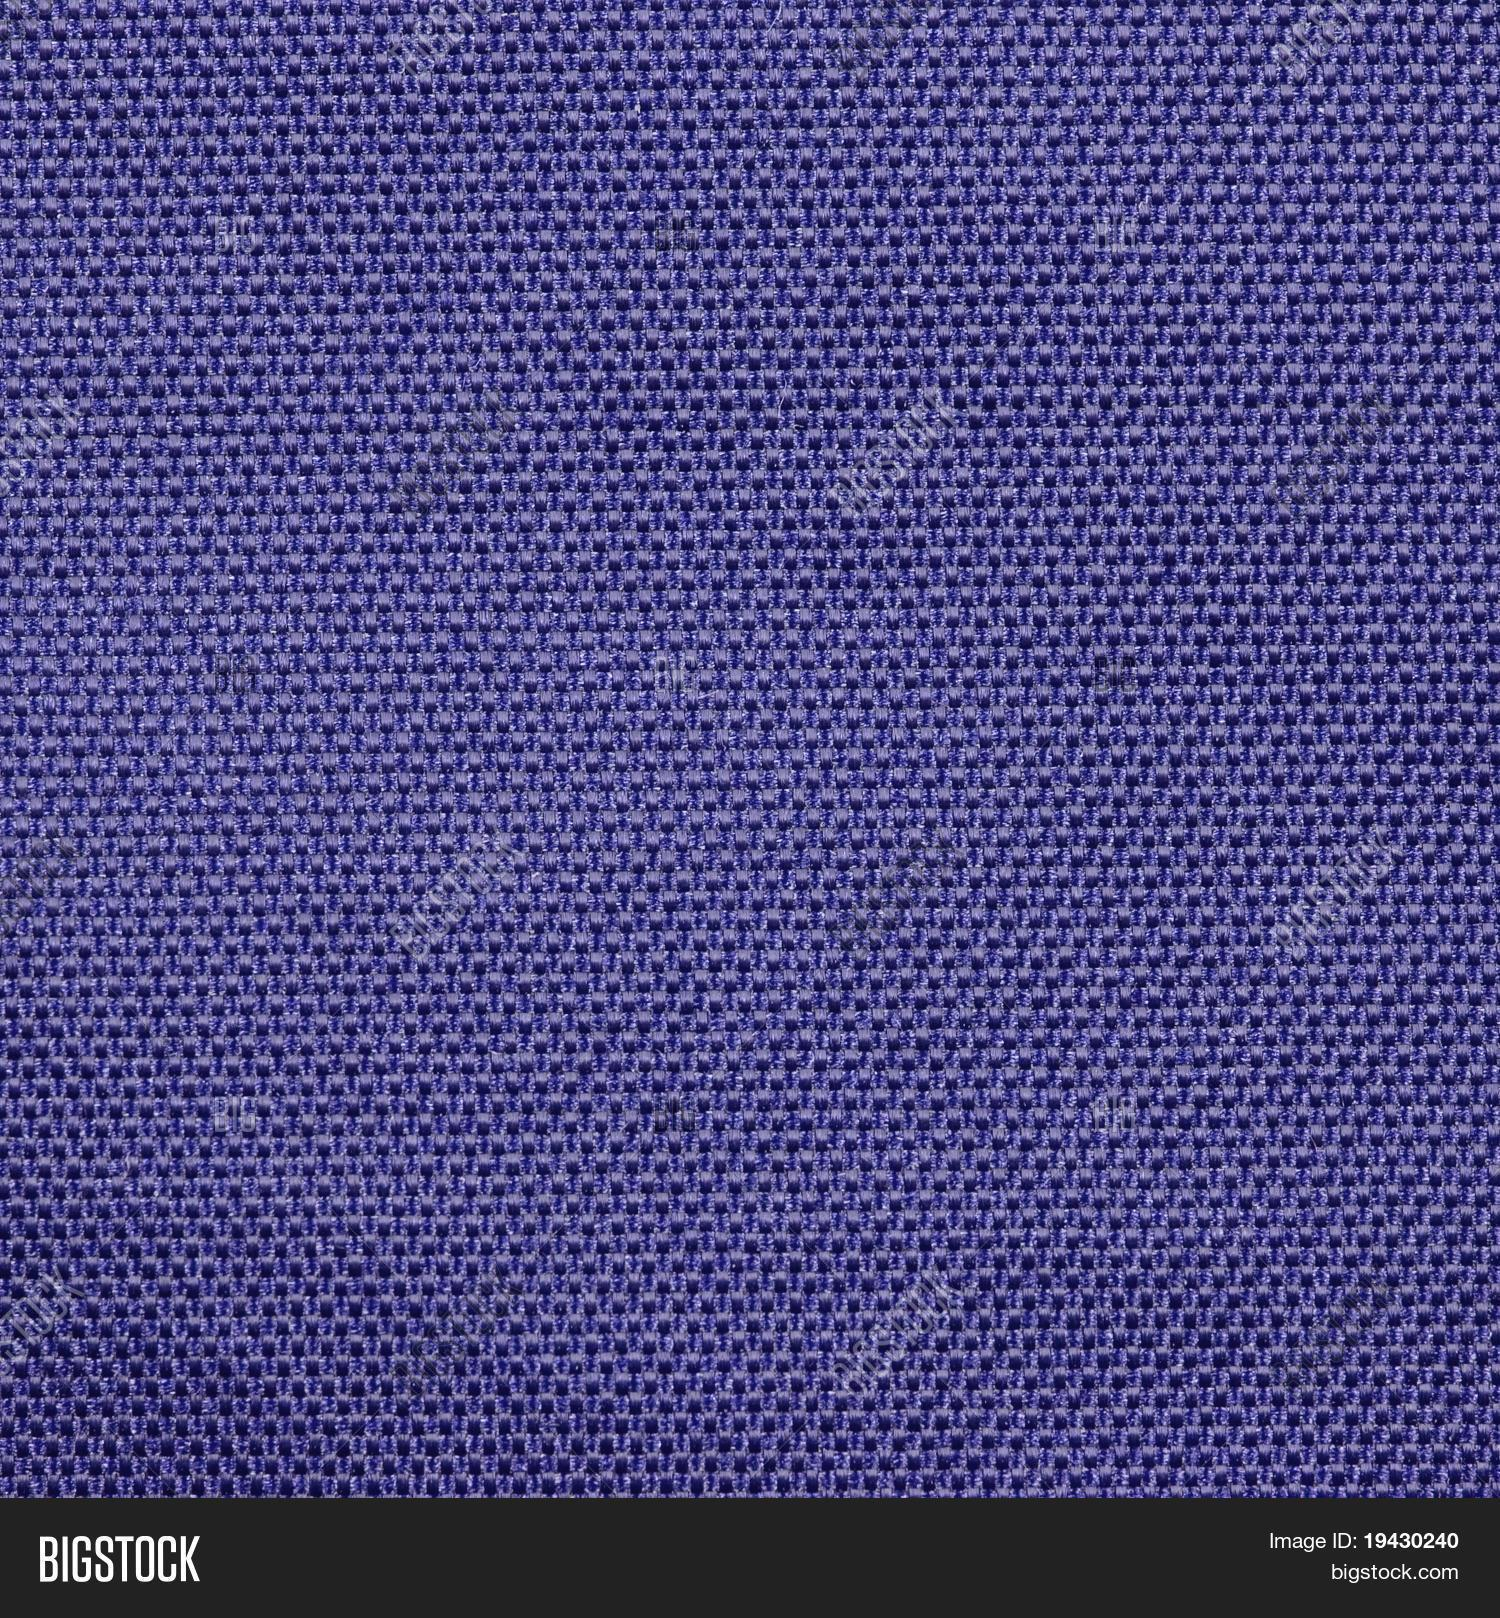 Polyester Fabric Texture Blue Purple Polyester Fabric Image & Photo  Bigstock